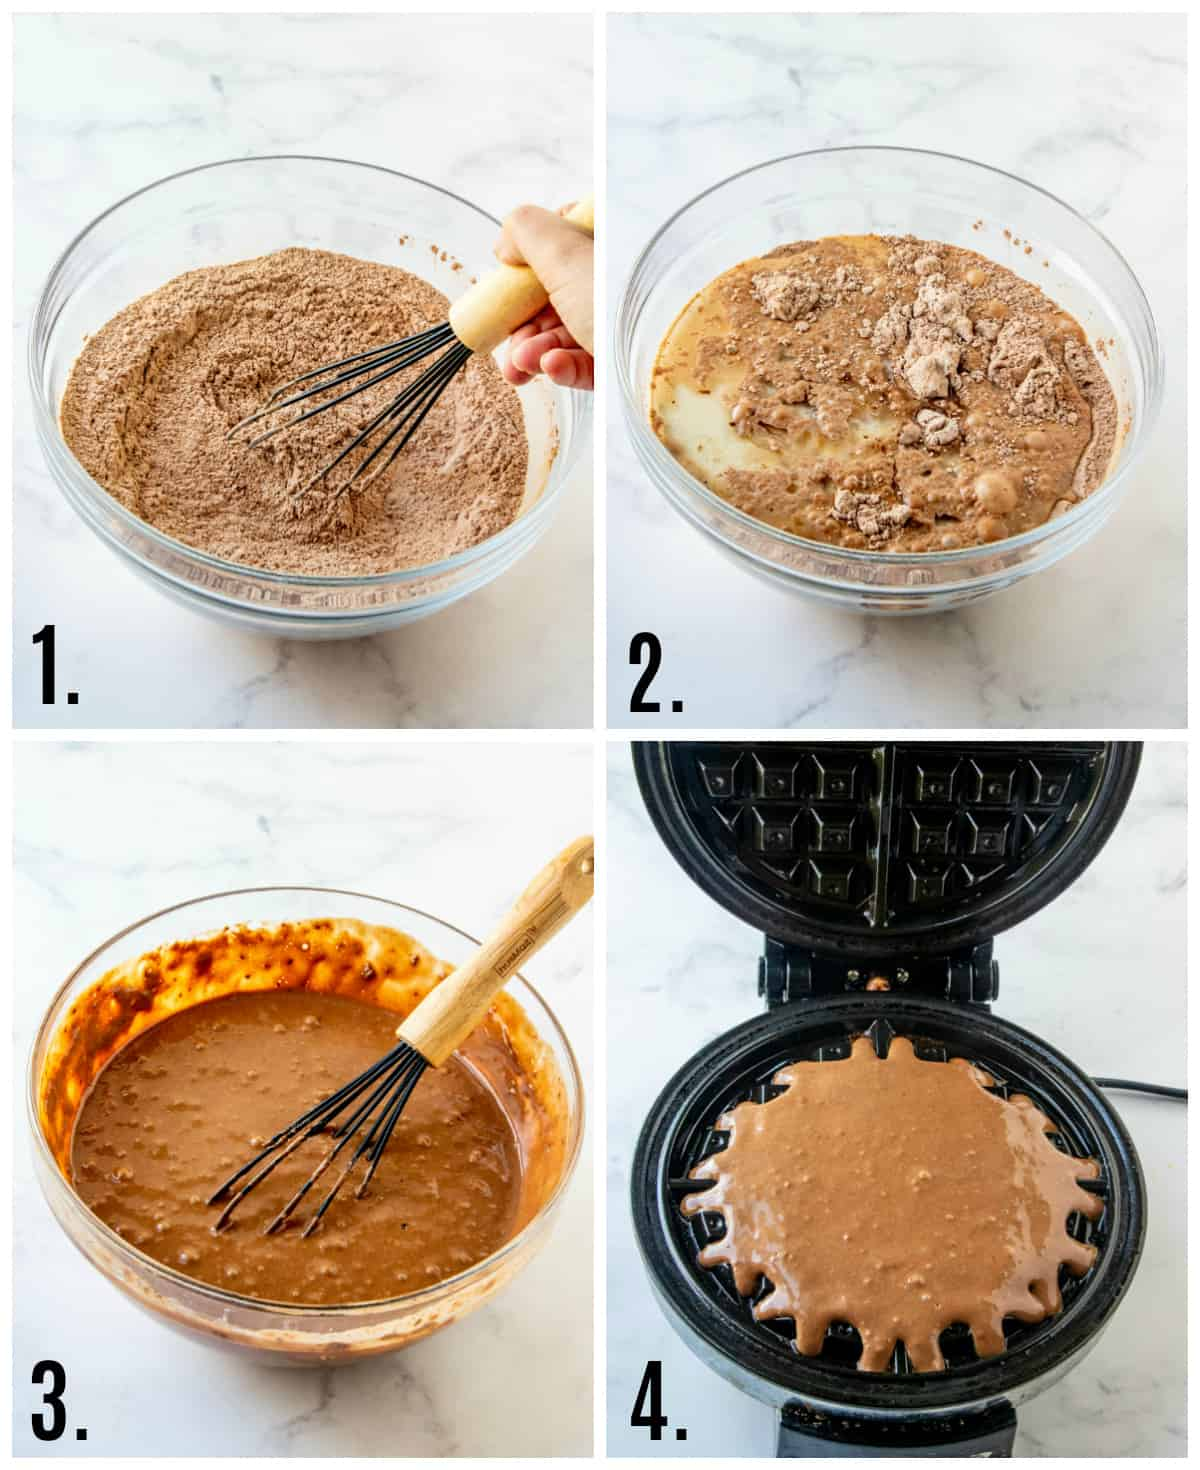 Step by step photos on how to make chocolate waffles